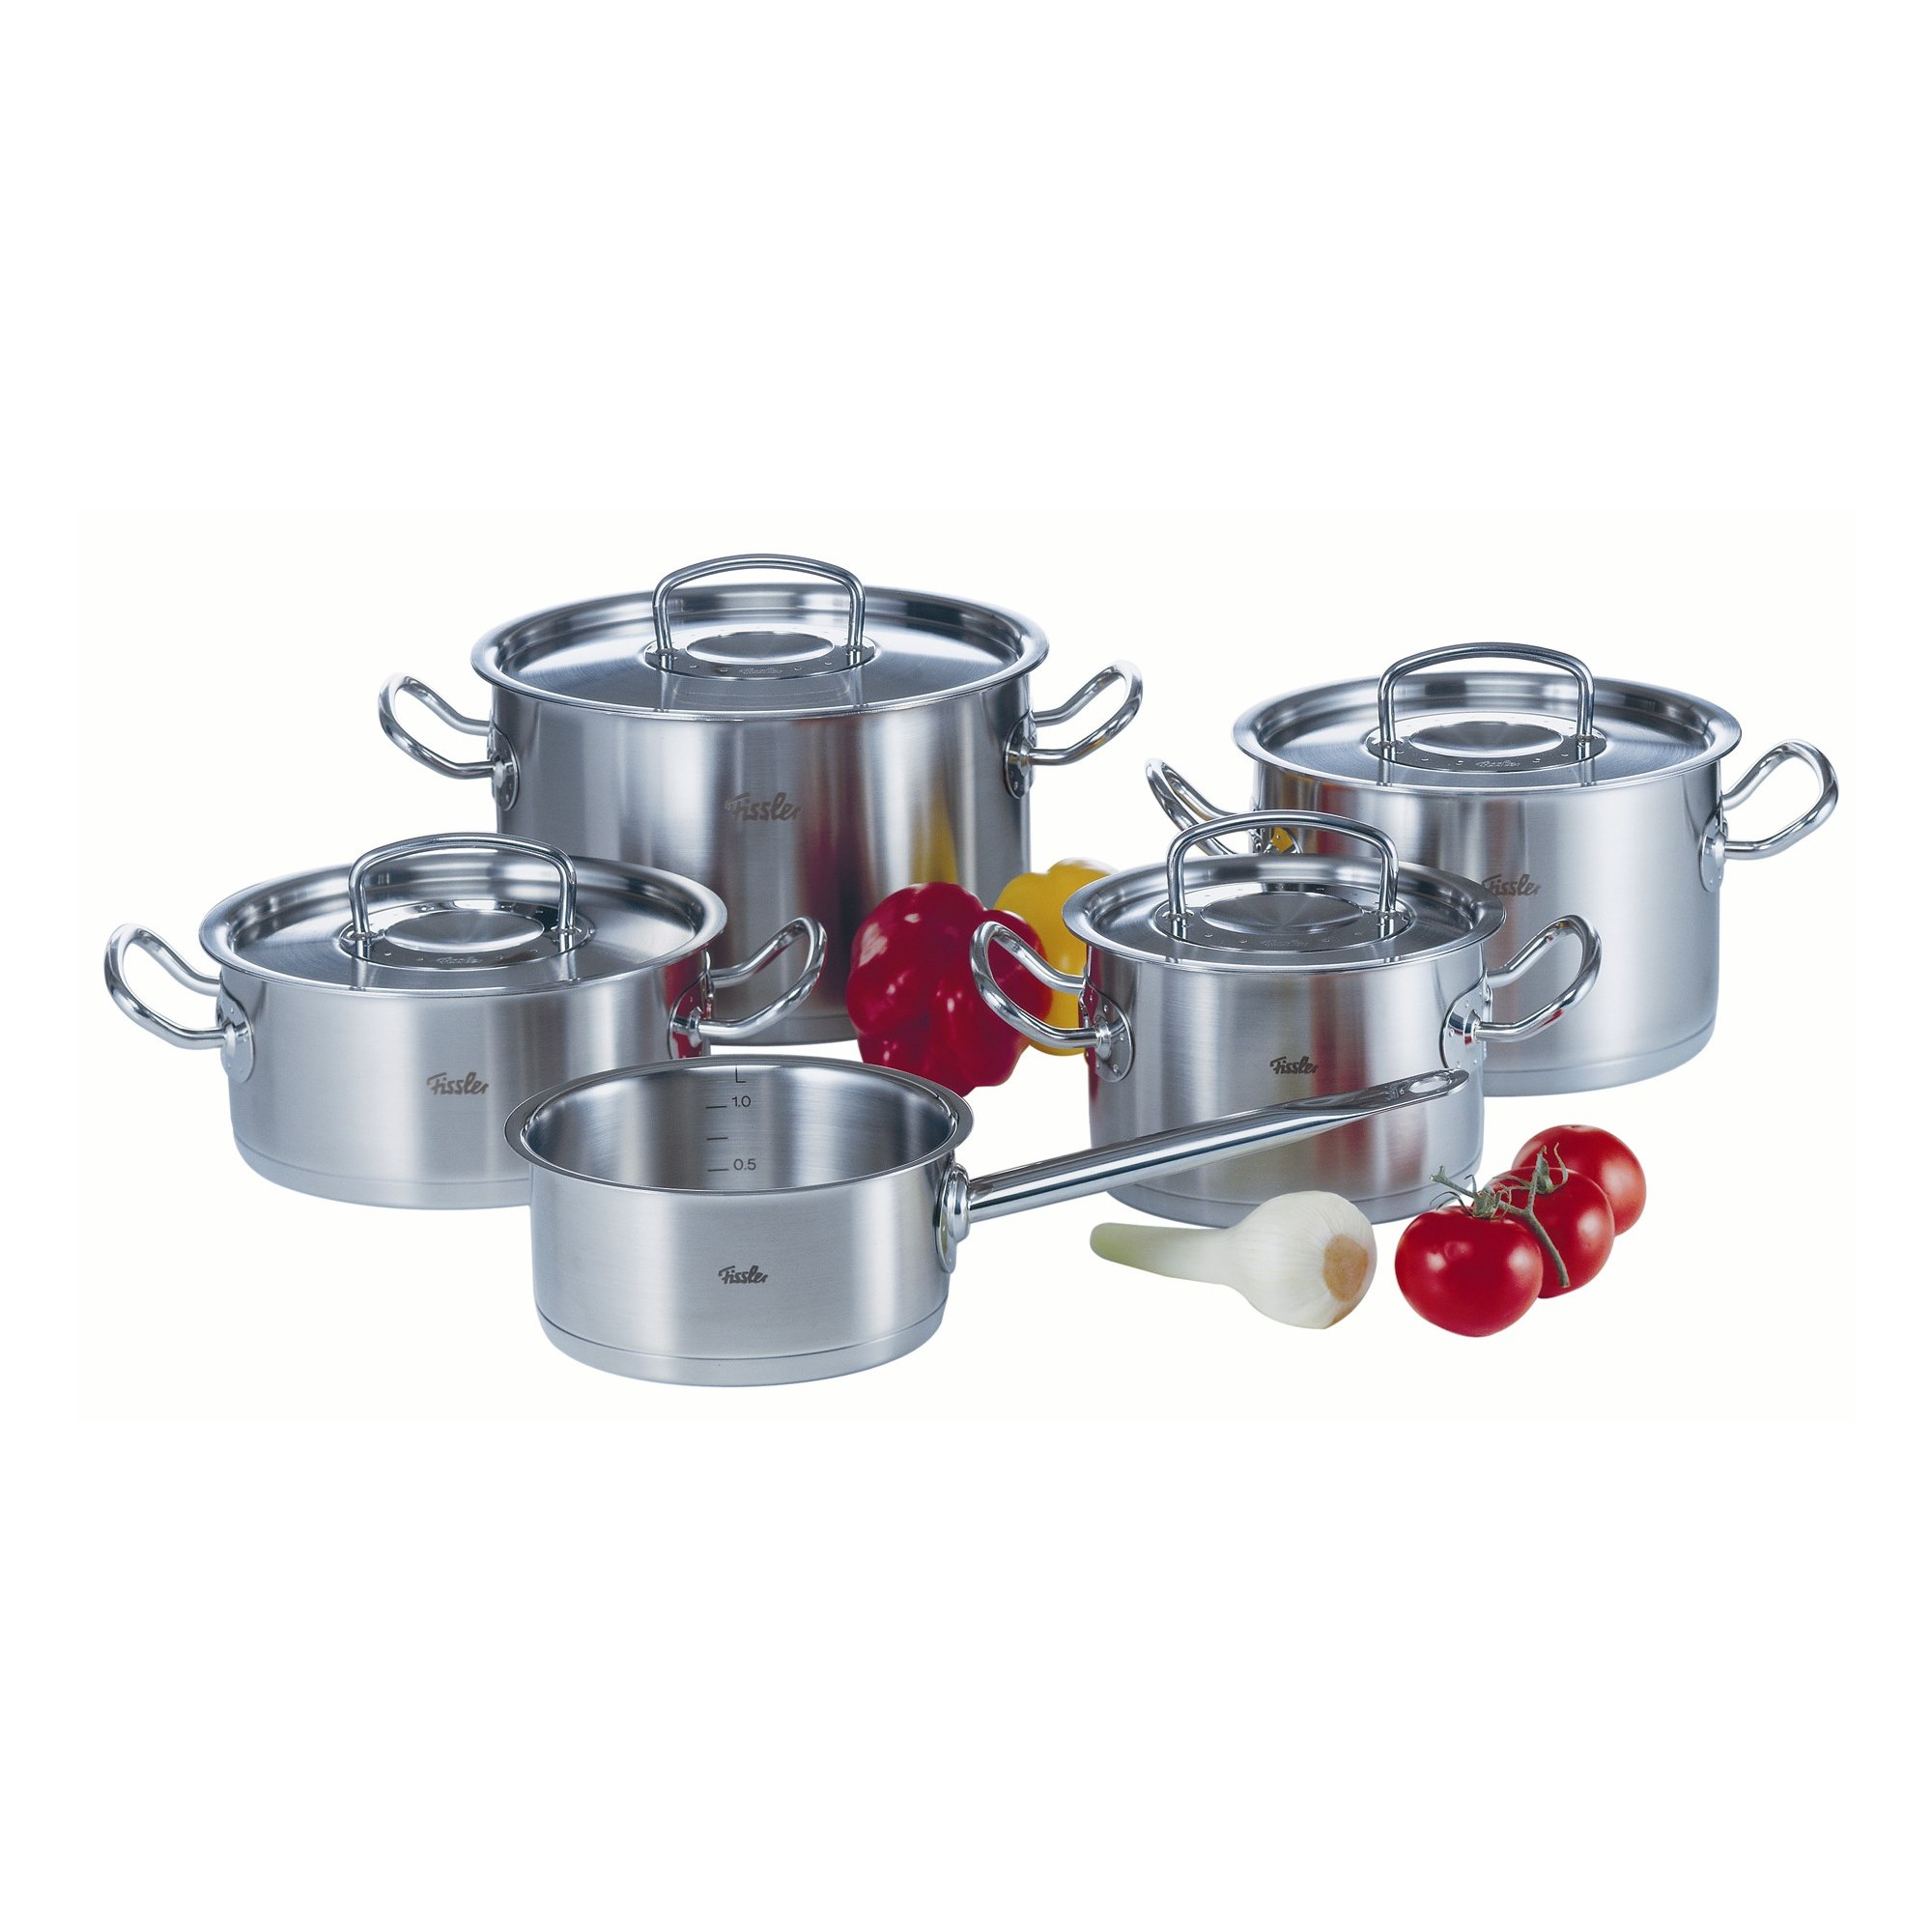 Fissler Profi Collection Set Fissler Topf Set Original Profi Collection 5 Teilig Ebay